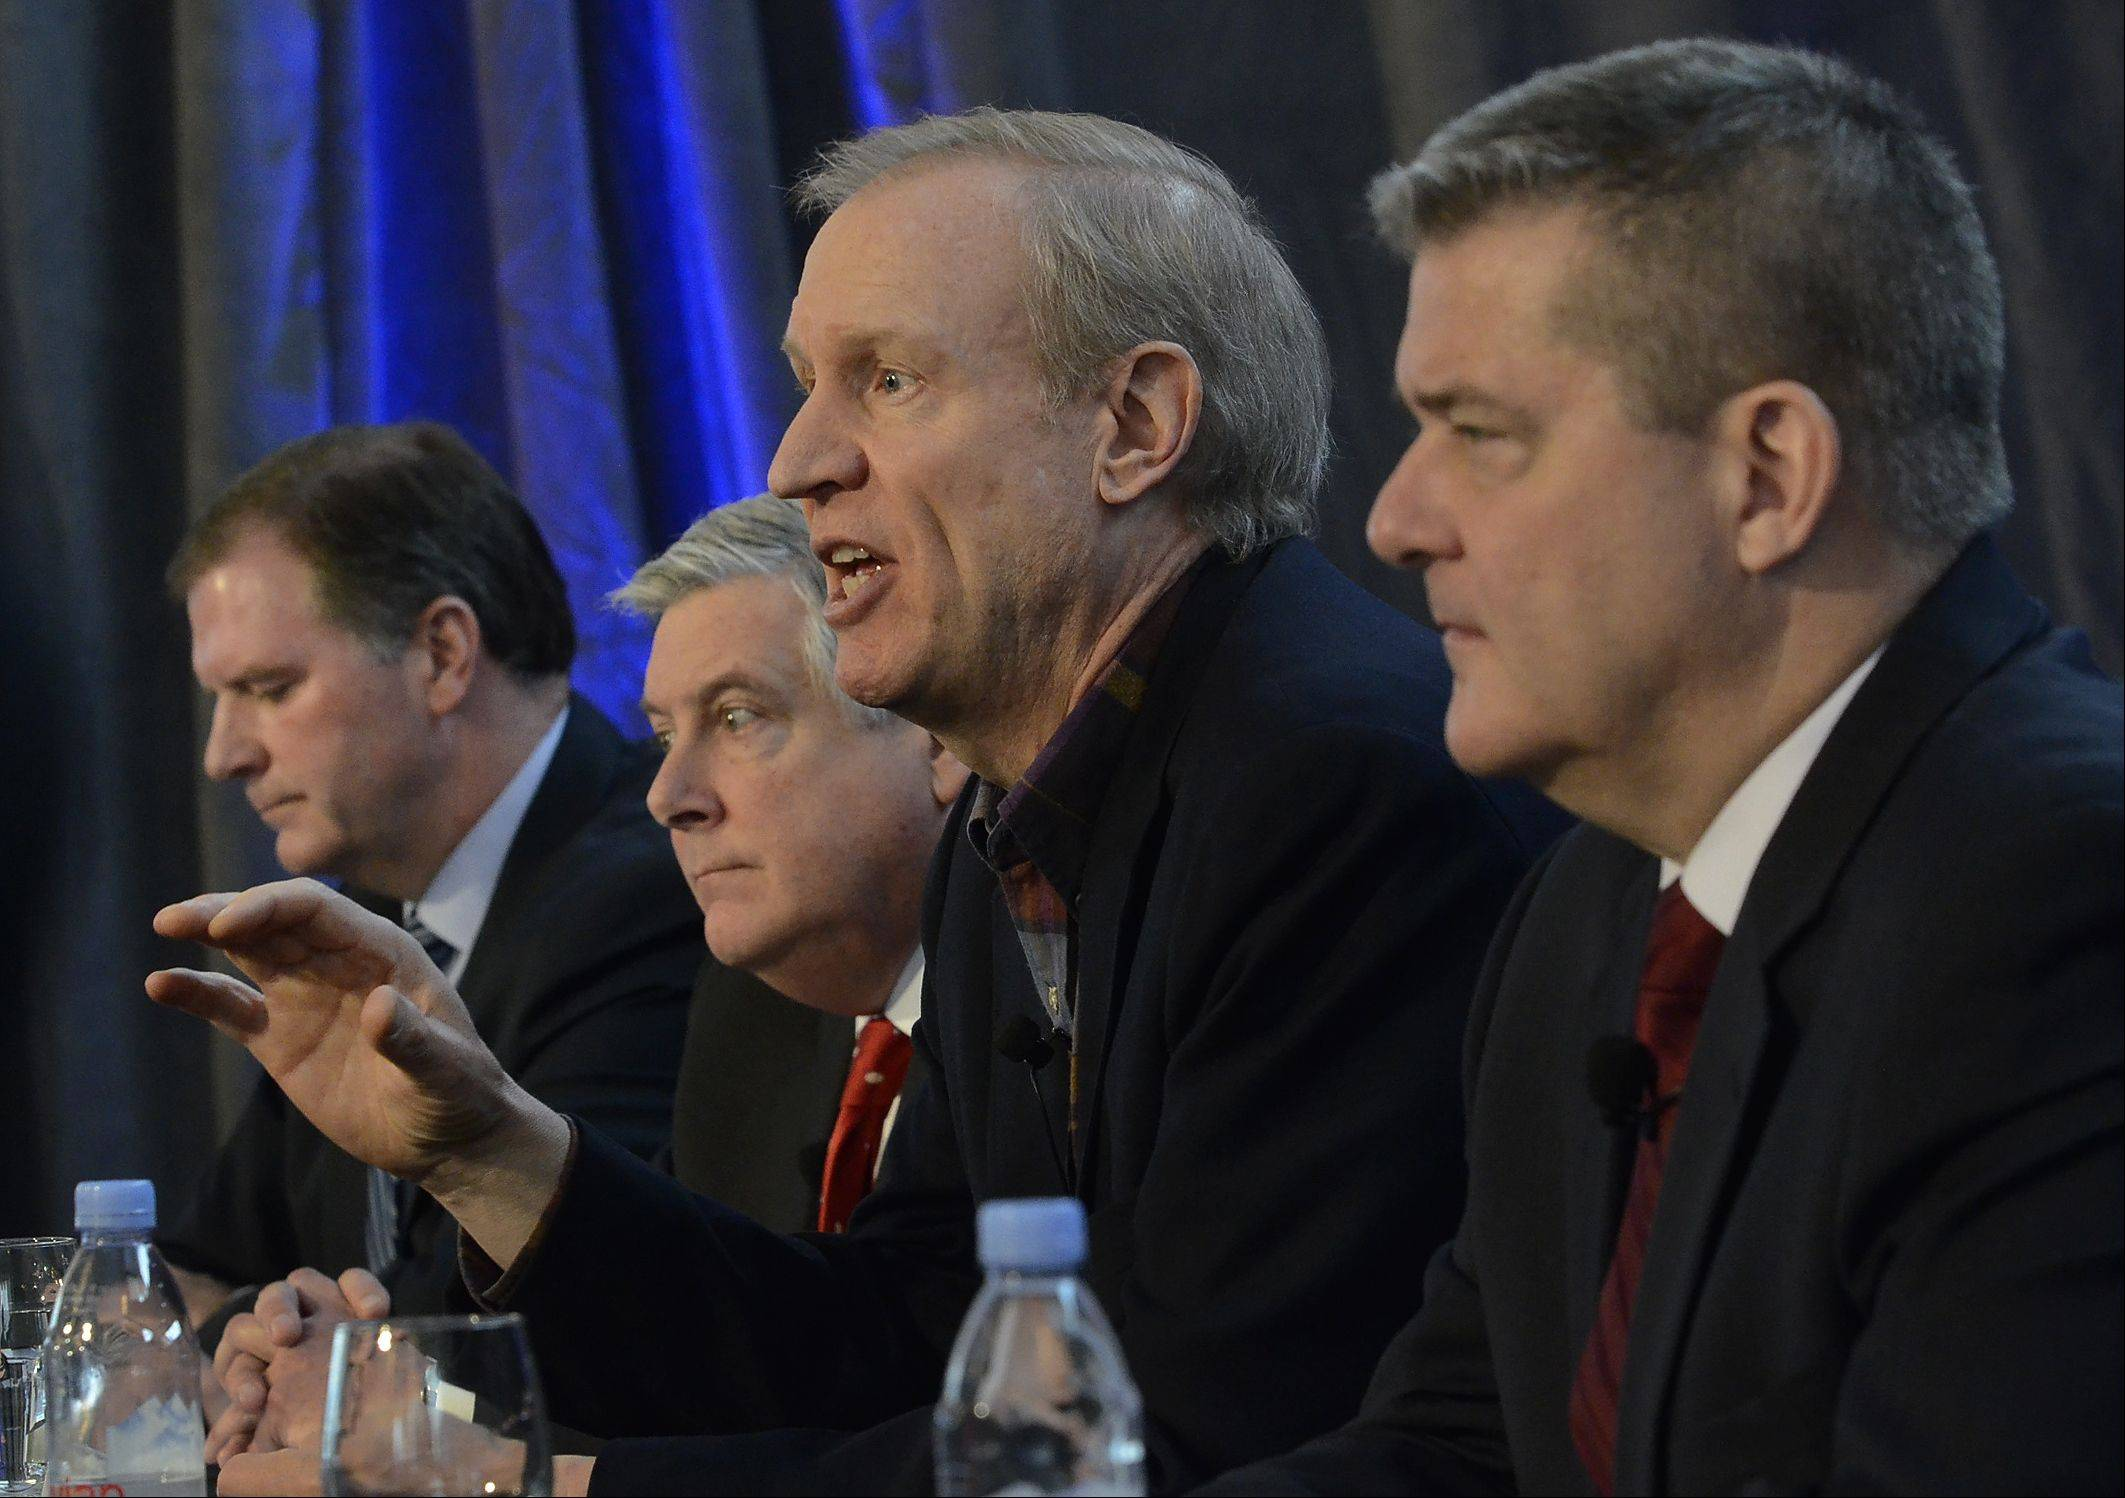 GOP gubernatorial candidates, from left, state Sen. Bill Brady, state Sen. Kirk Dillard, Bruce Rauner, and Illinois Treasurer Dan Rutherford talk Thursday about issues important to them at a candidates forum in Mount Prospect.